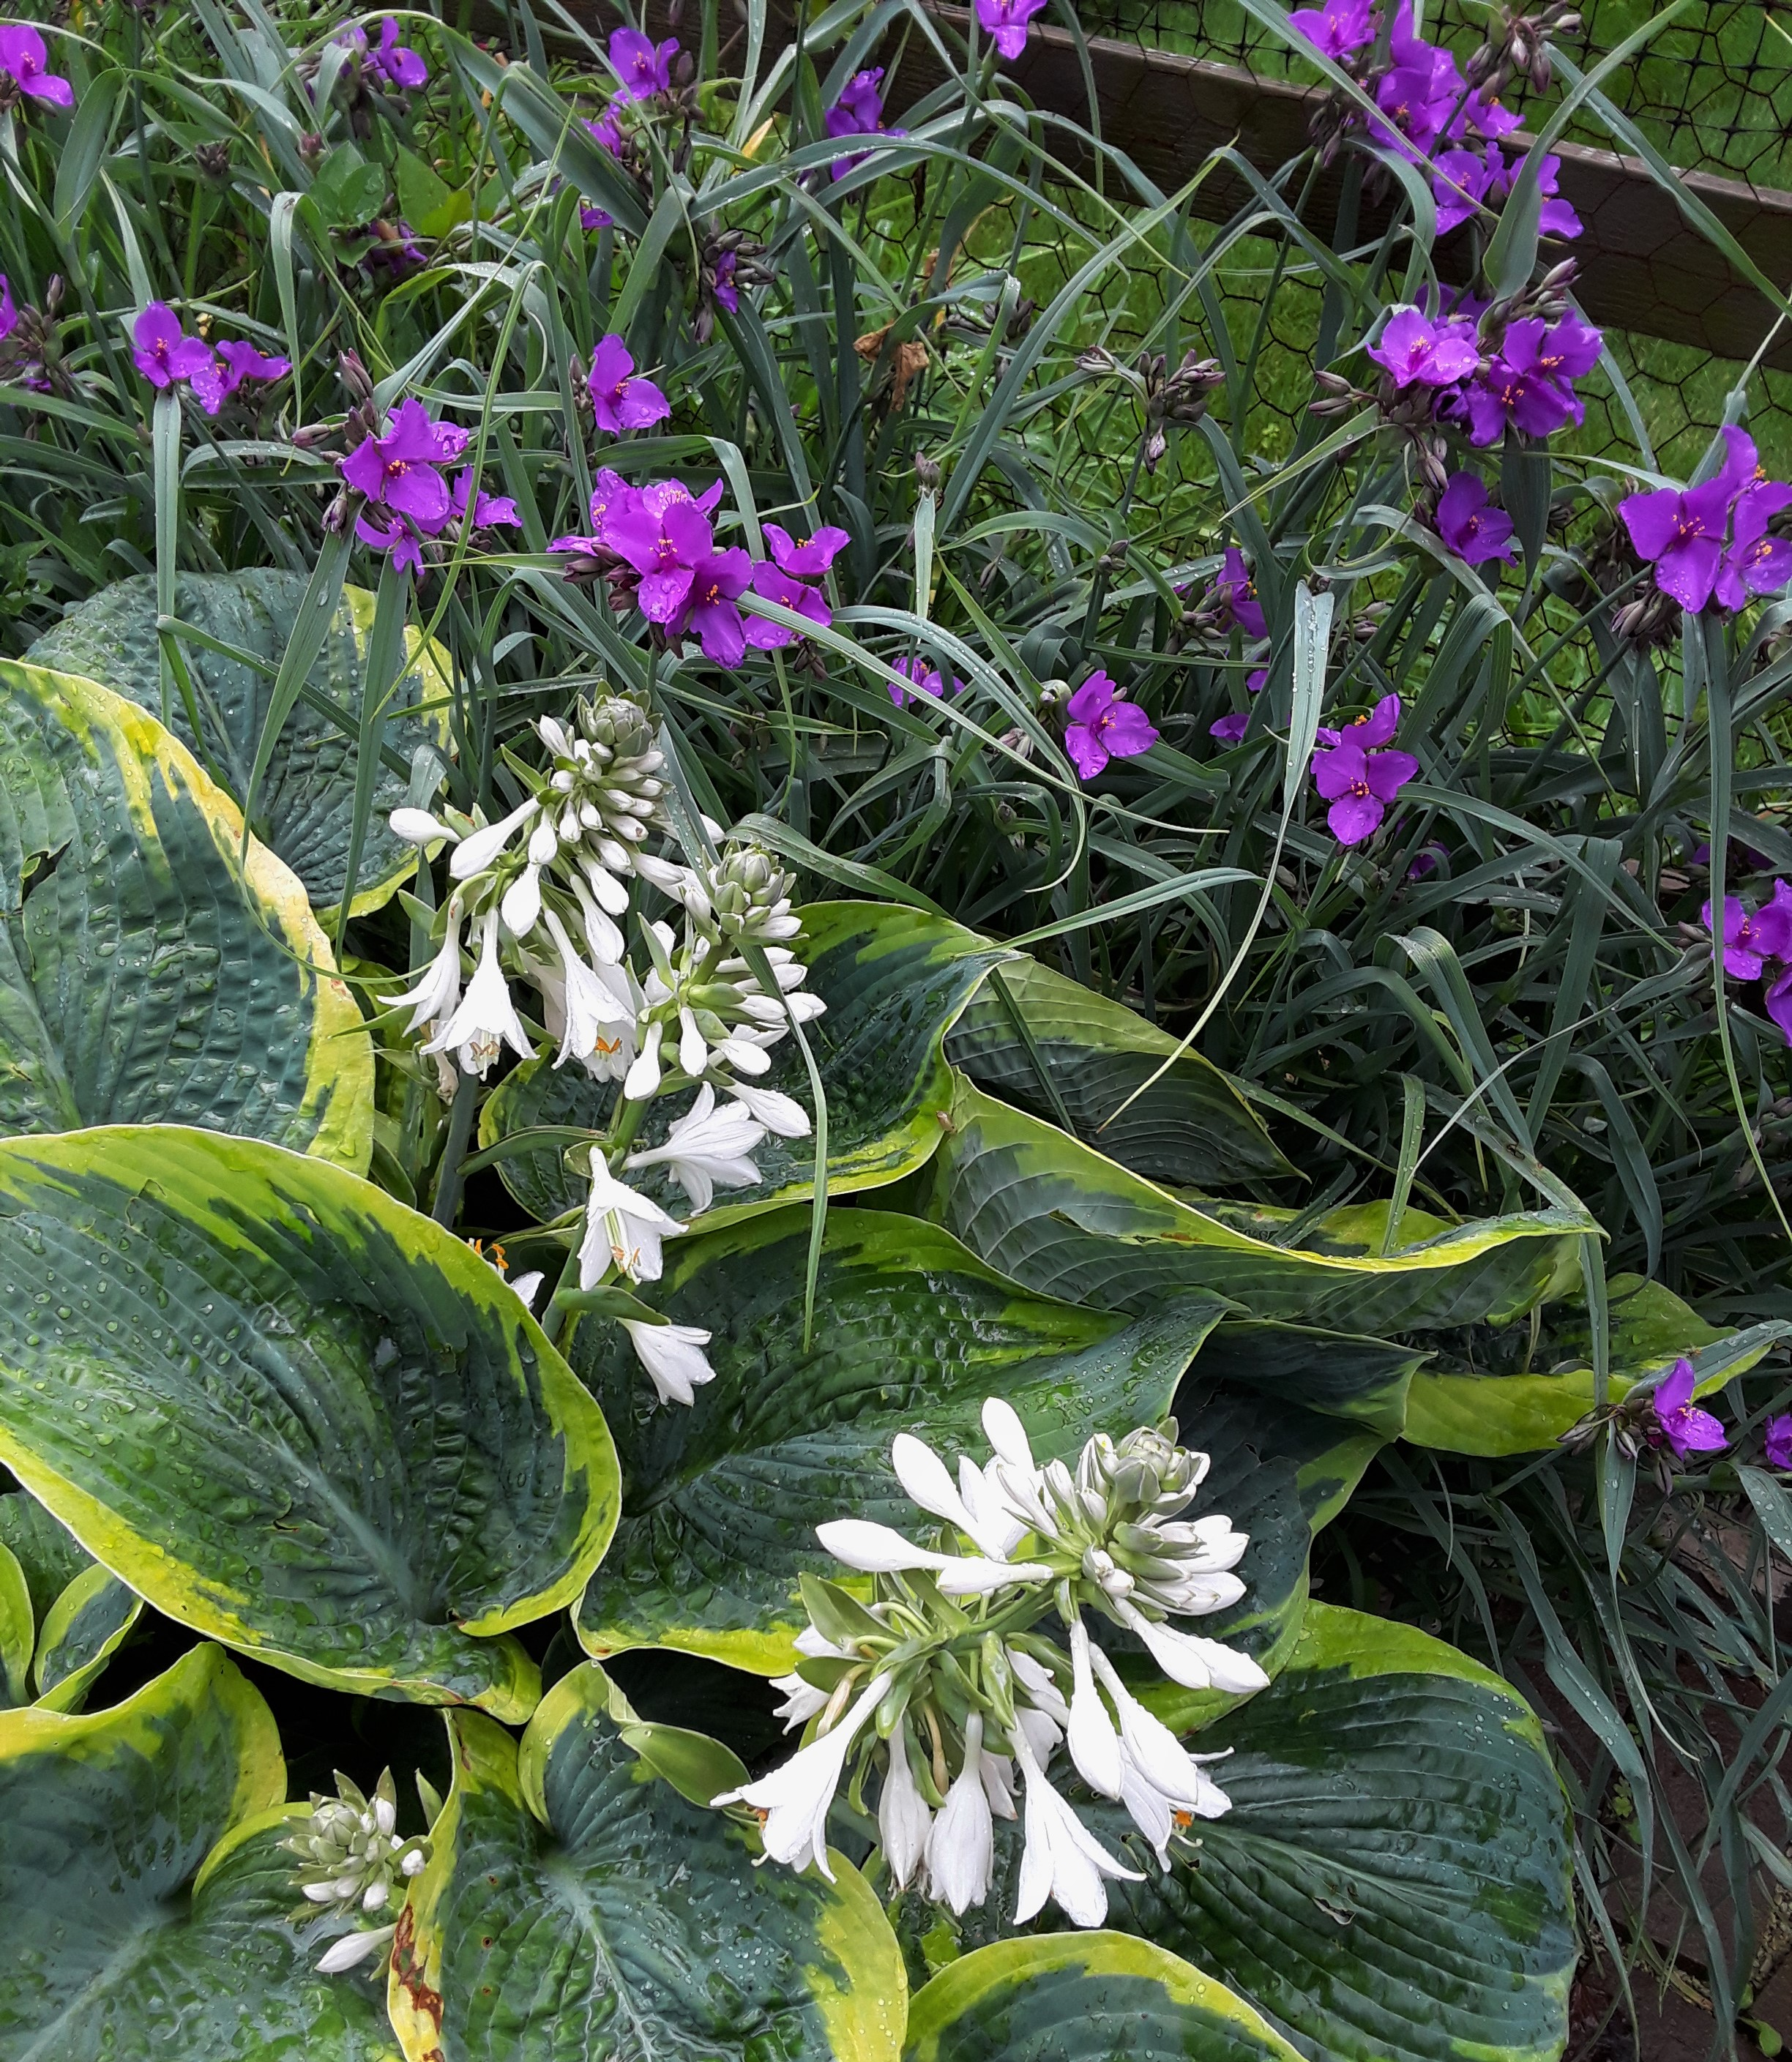 white flowers of hosta and purple flowers of tradescantia